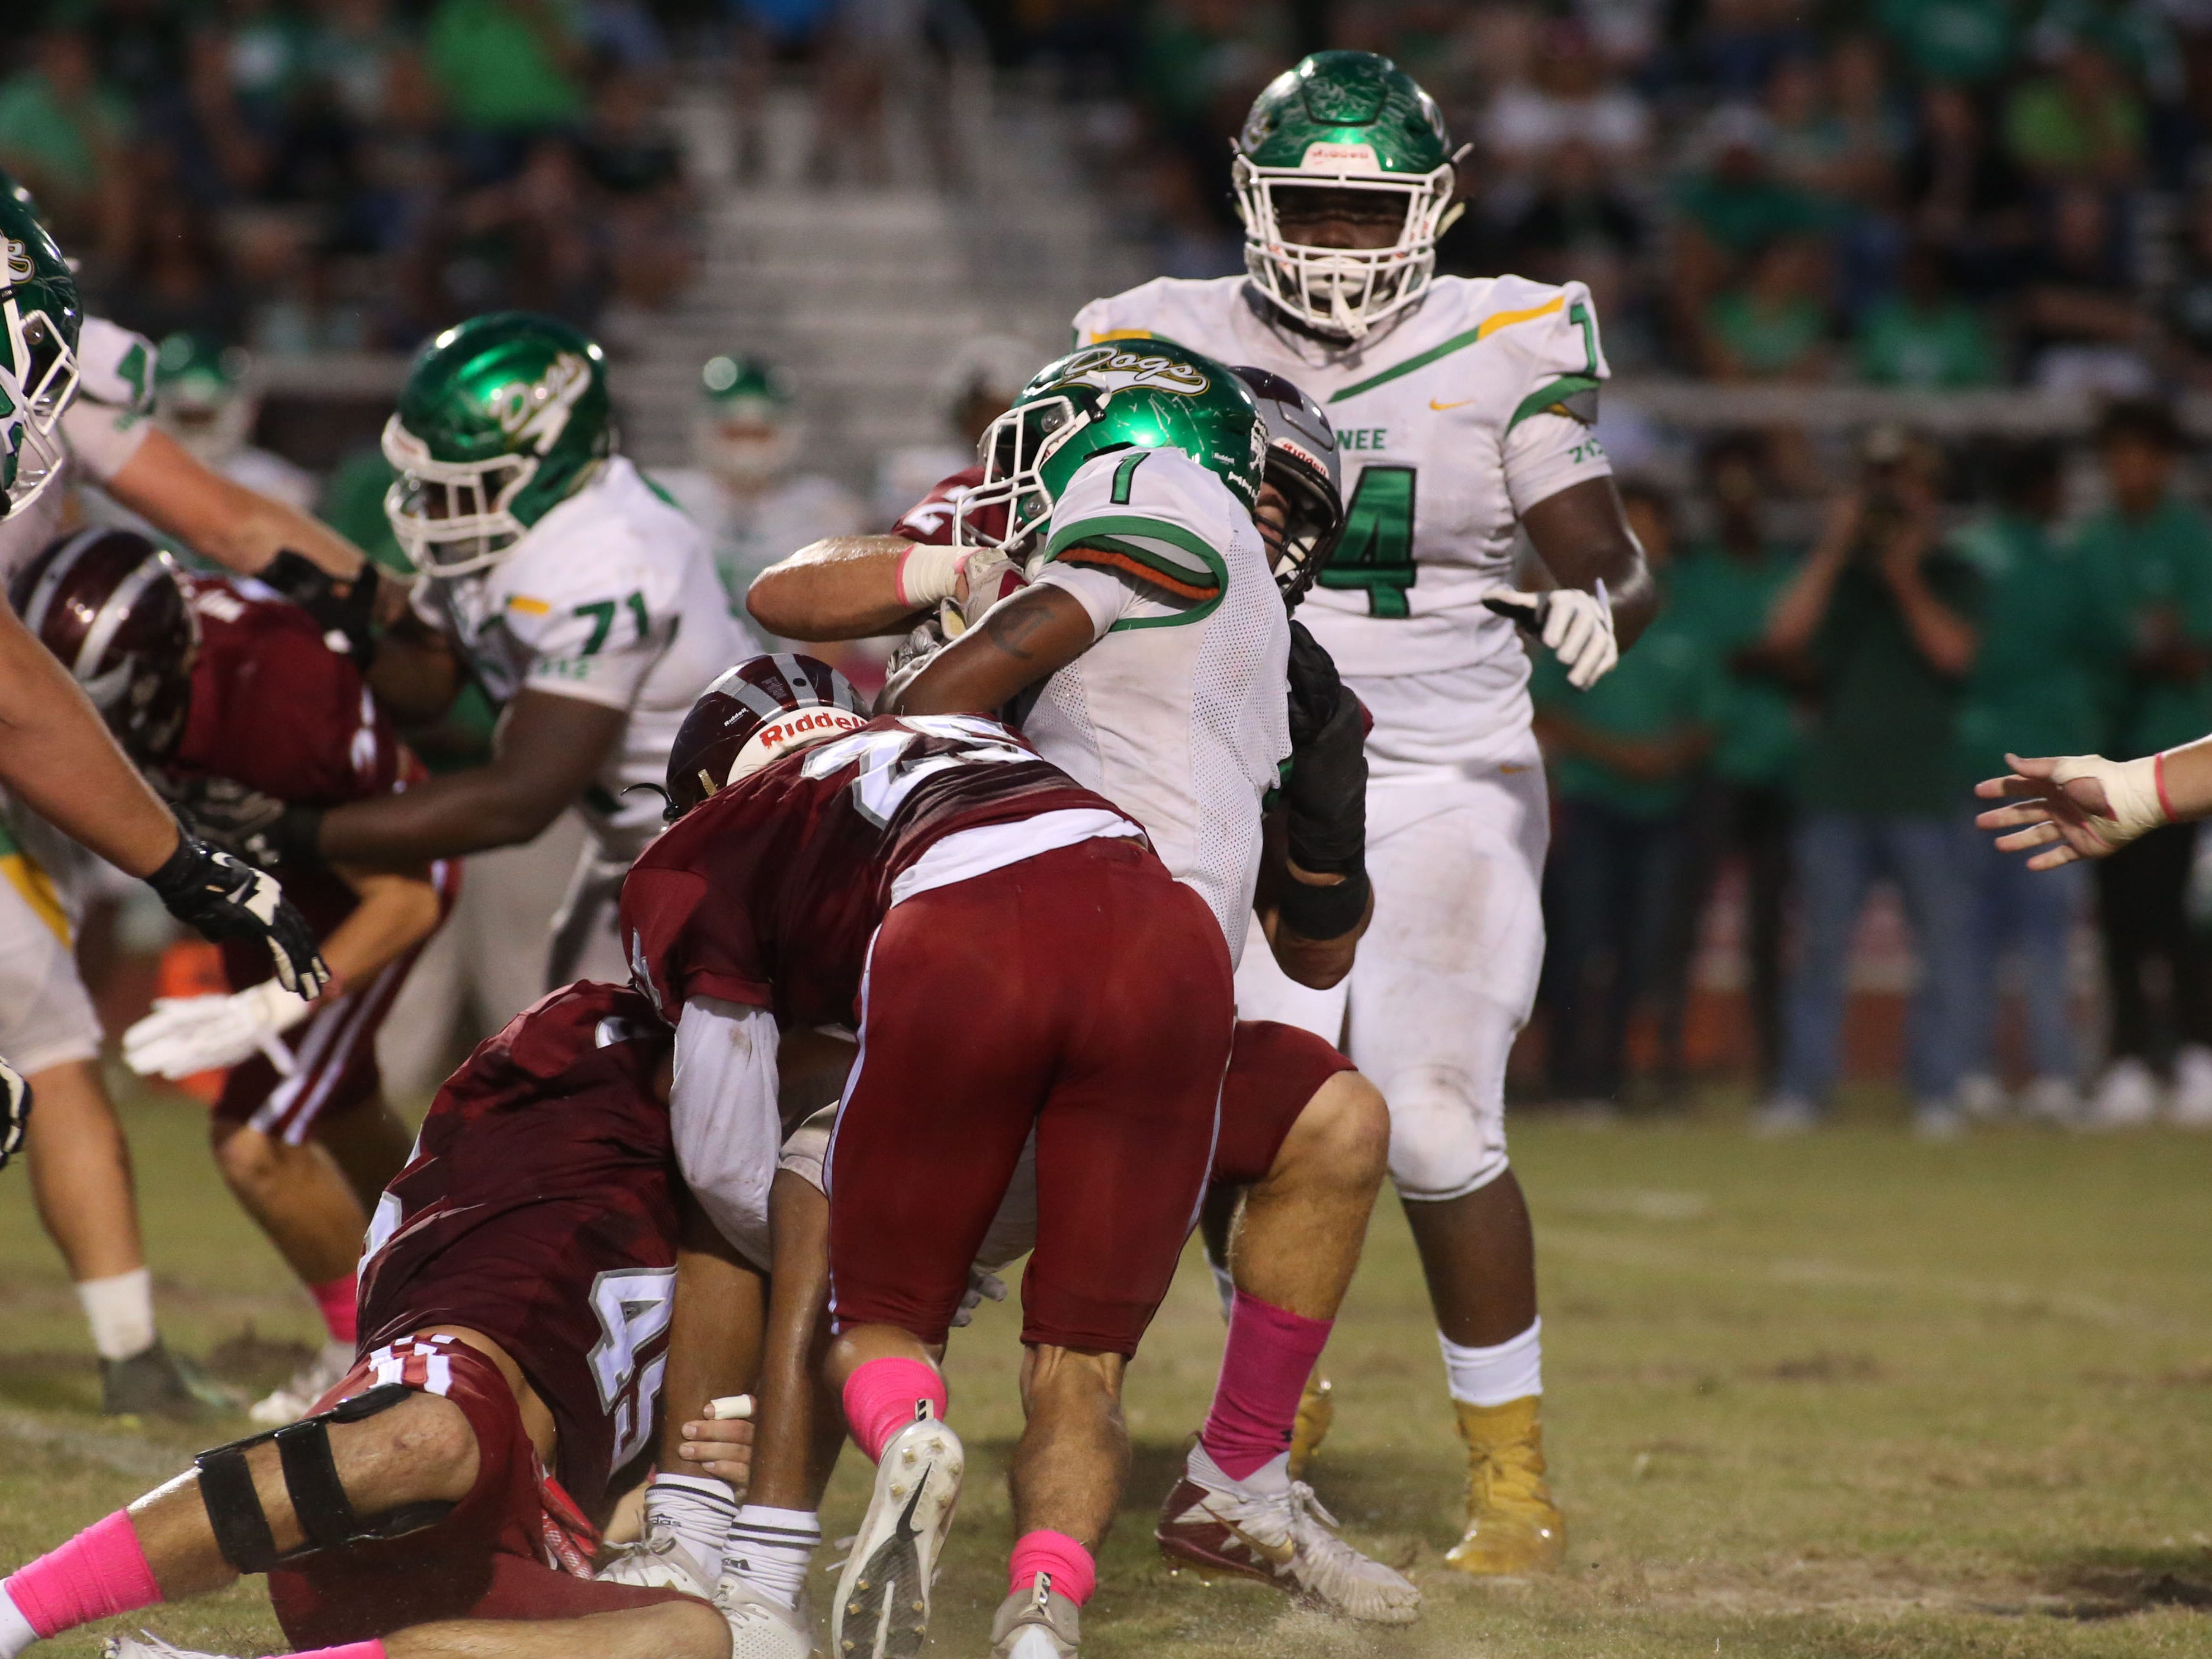 The Suwannee Bulldogs play the Chiles Timberwolves in a high school football game on Friday, Oct. 5, 2018.